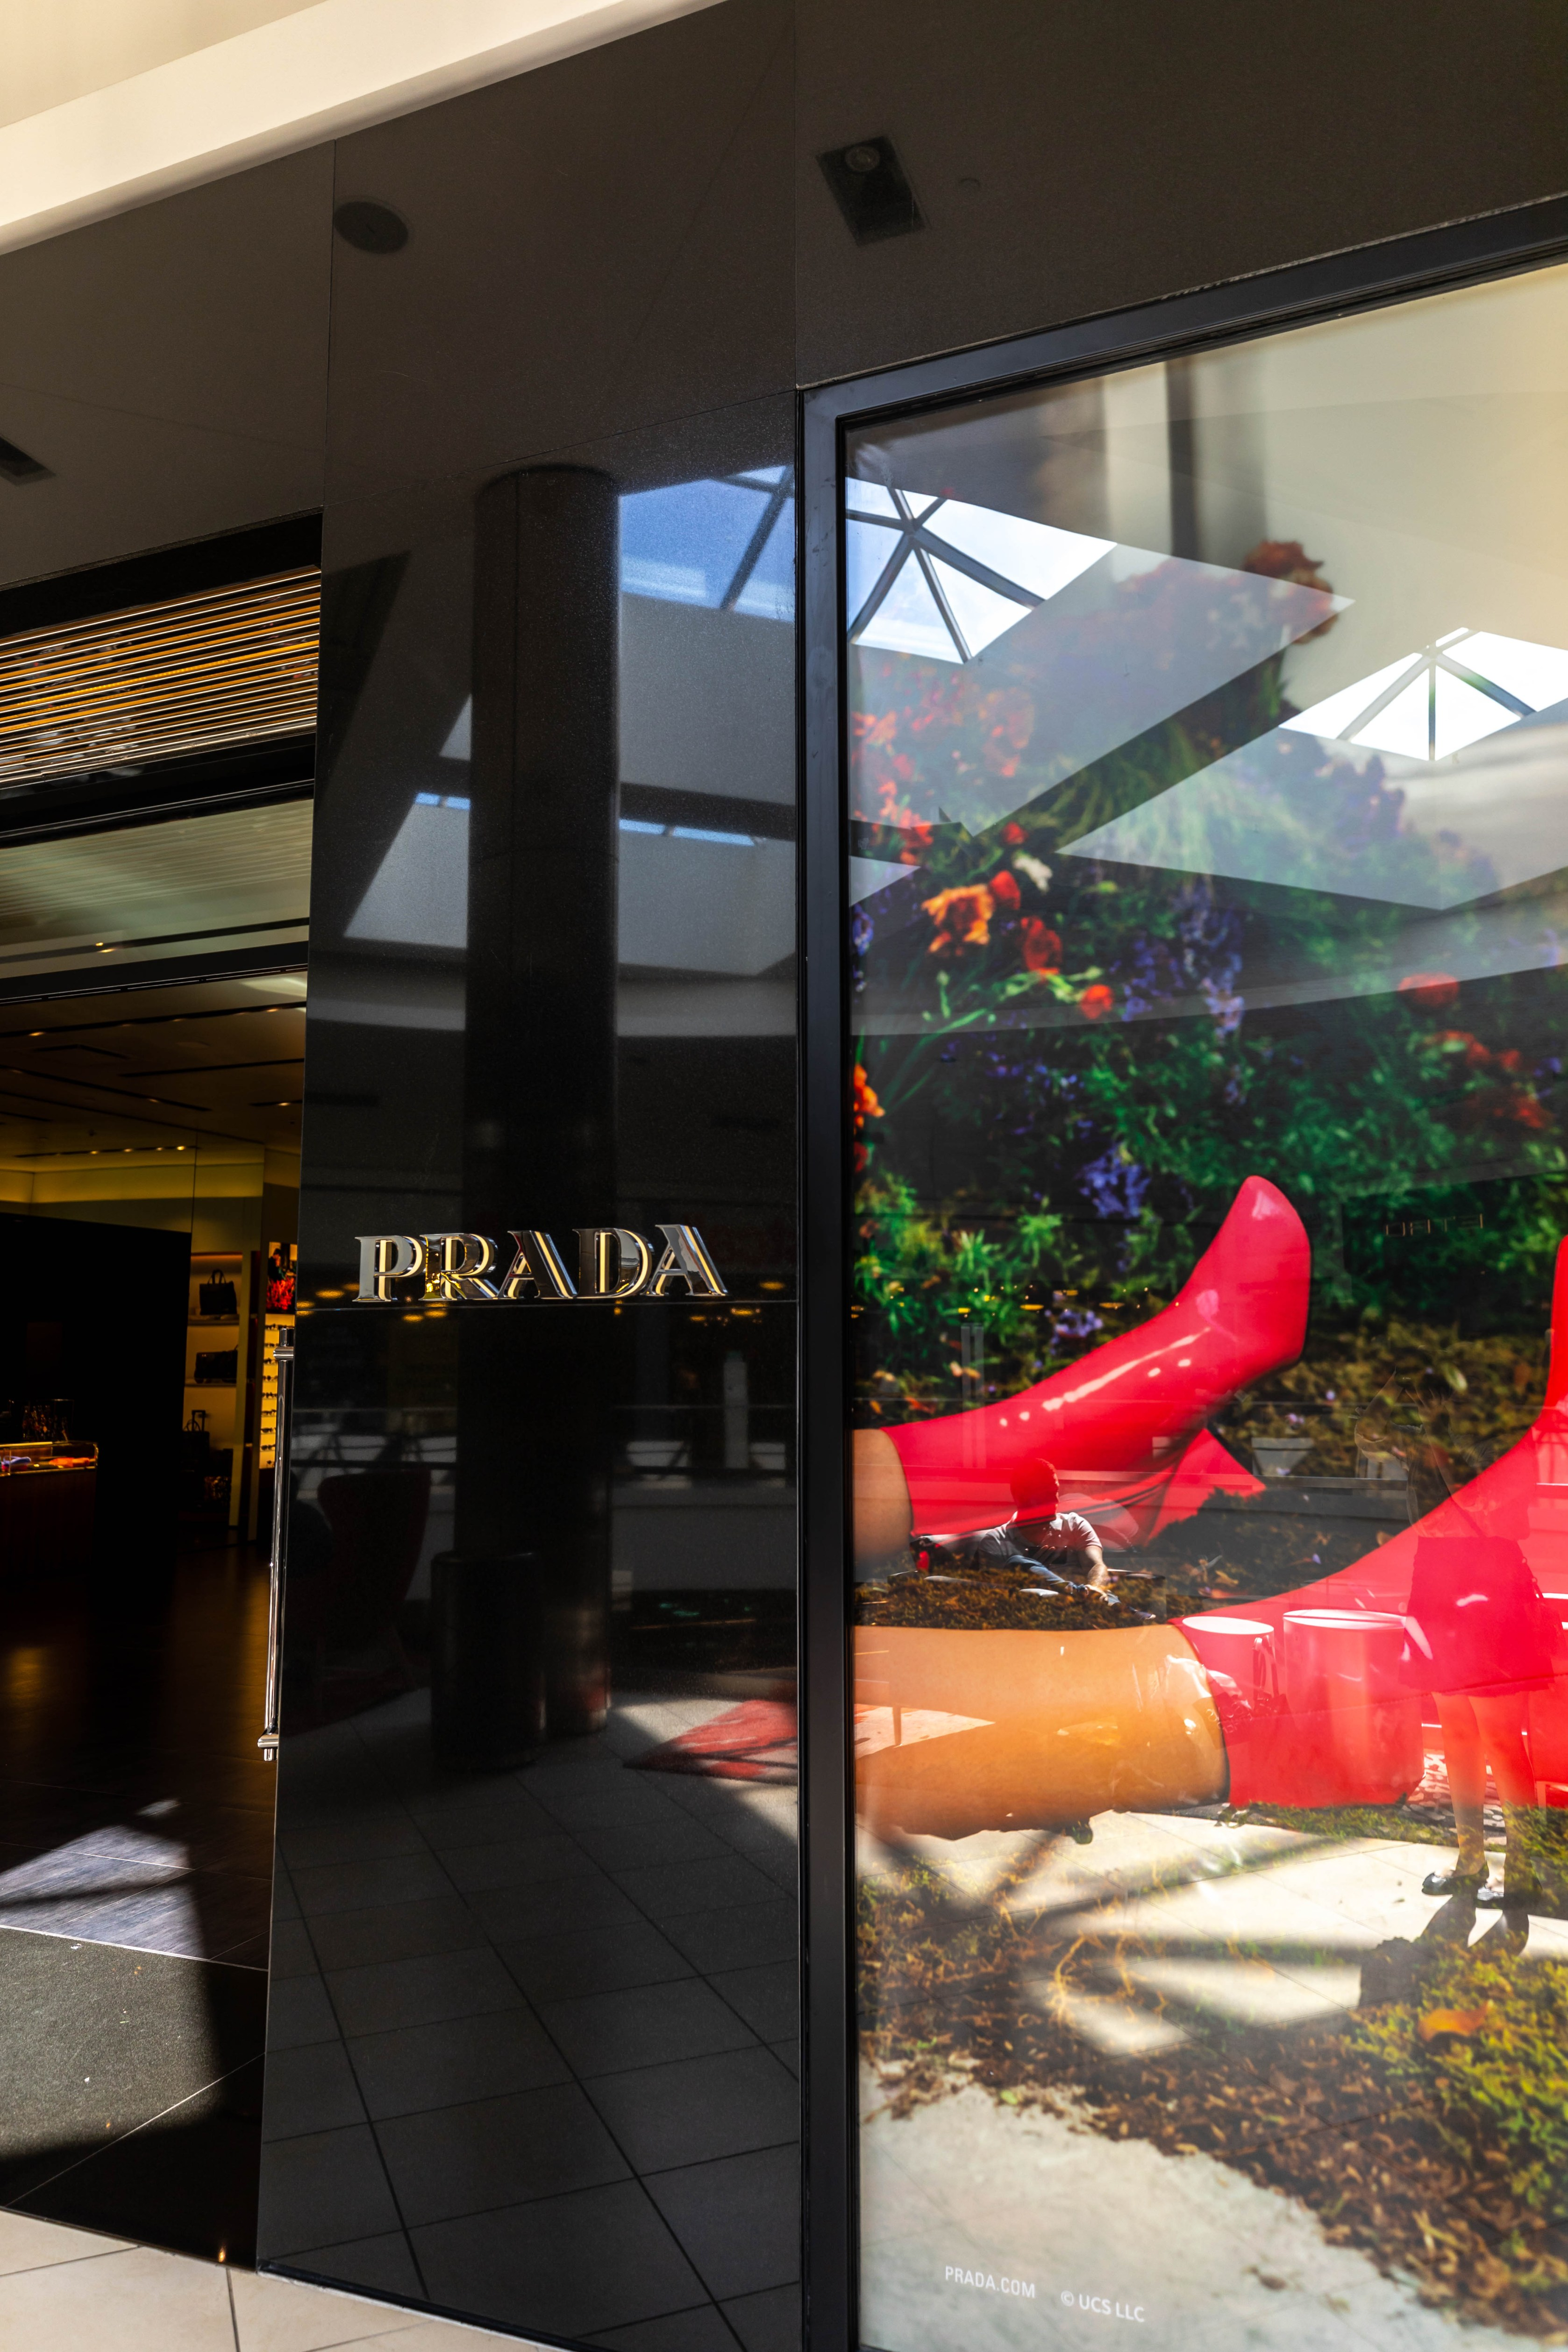 Shopping Prada, Gucci, Jimmy Choo & More at Fashion Outlets of Chicago